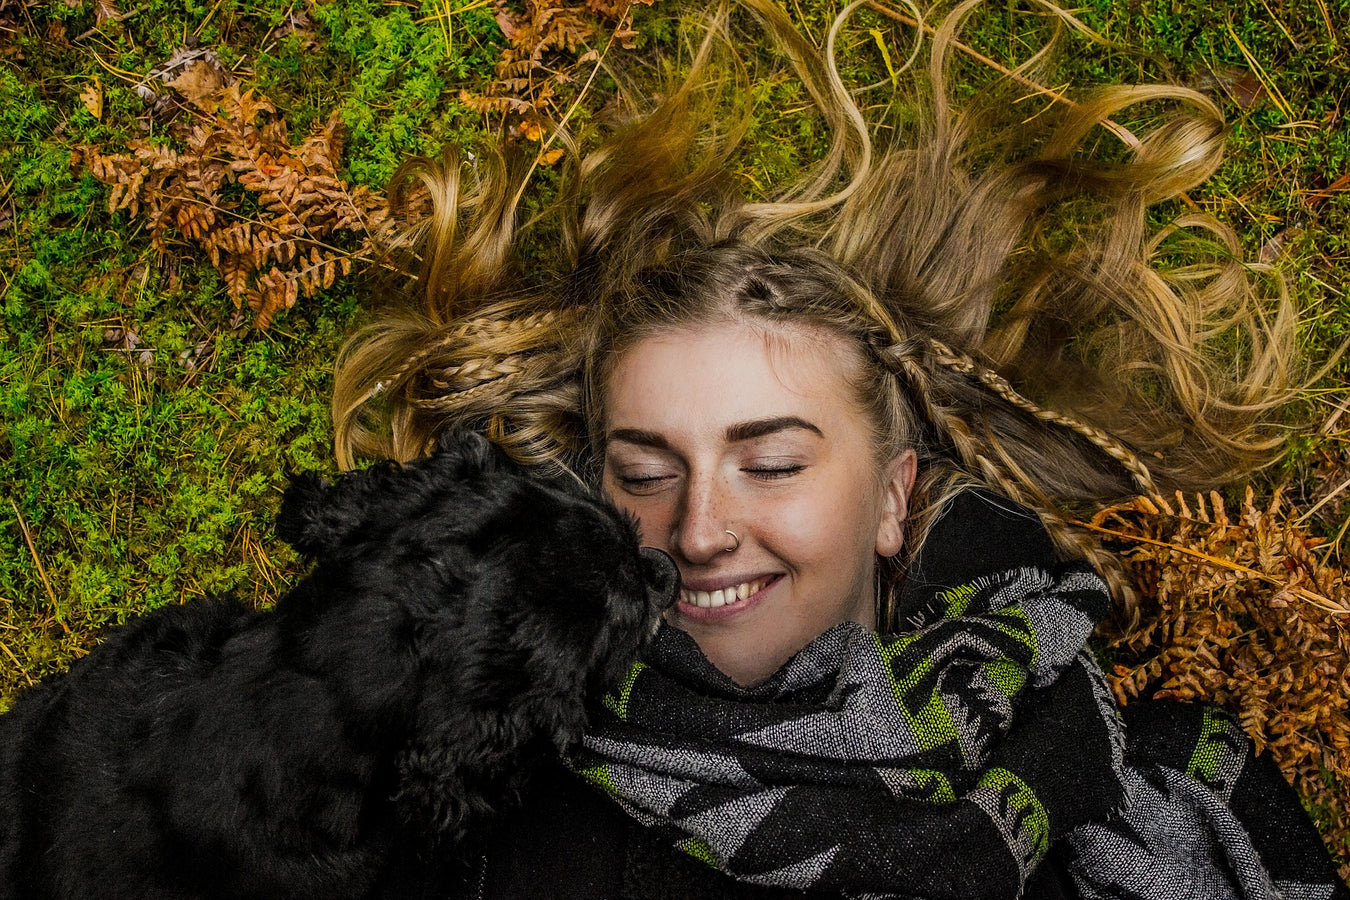 vegan-woman-with-dog